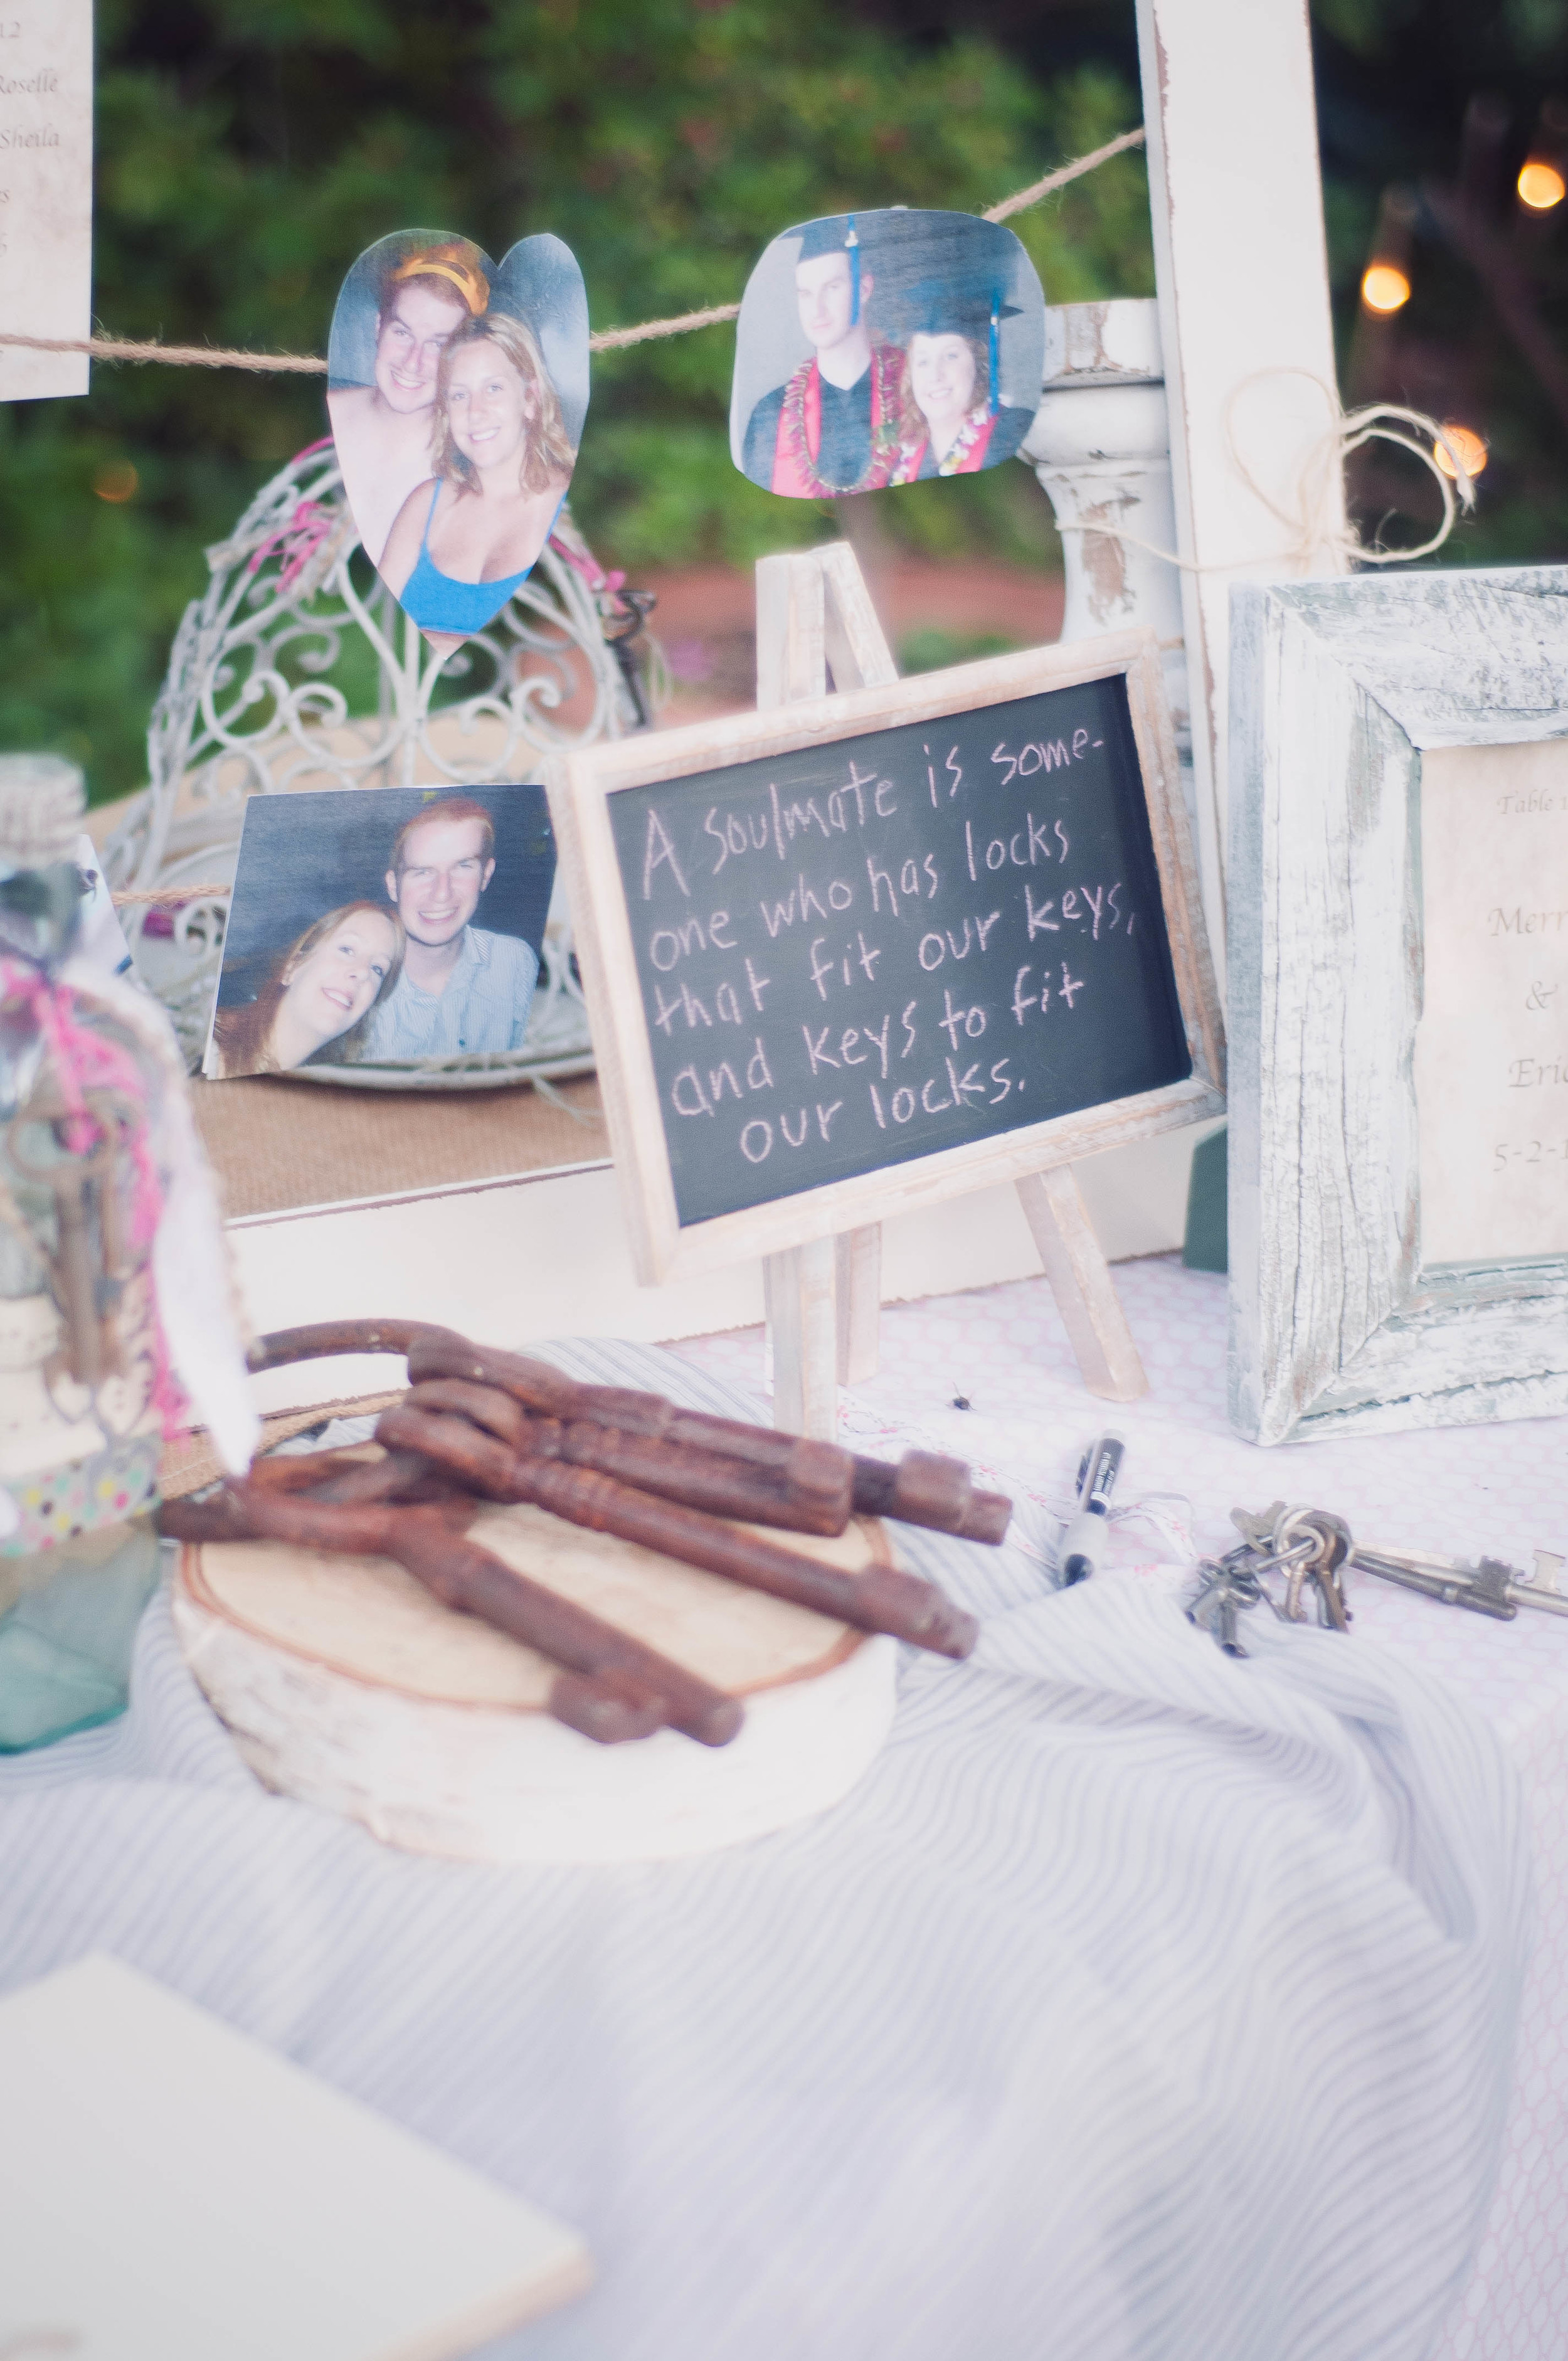 The mother of the bride created the centerpieces, welcome table, and signage for the wedding.  The rustic and eclectic style couldn't have been more perfect, and there were so many fun personal touches throughout the wedding.